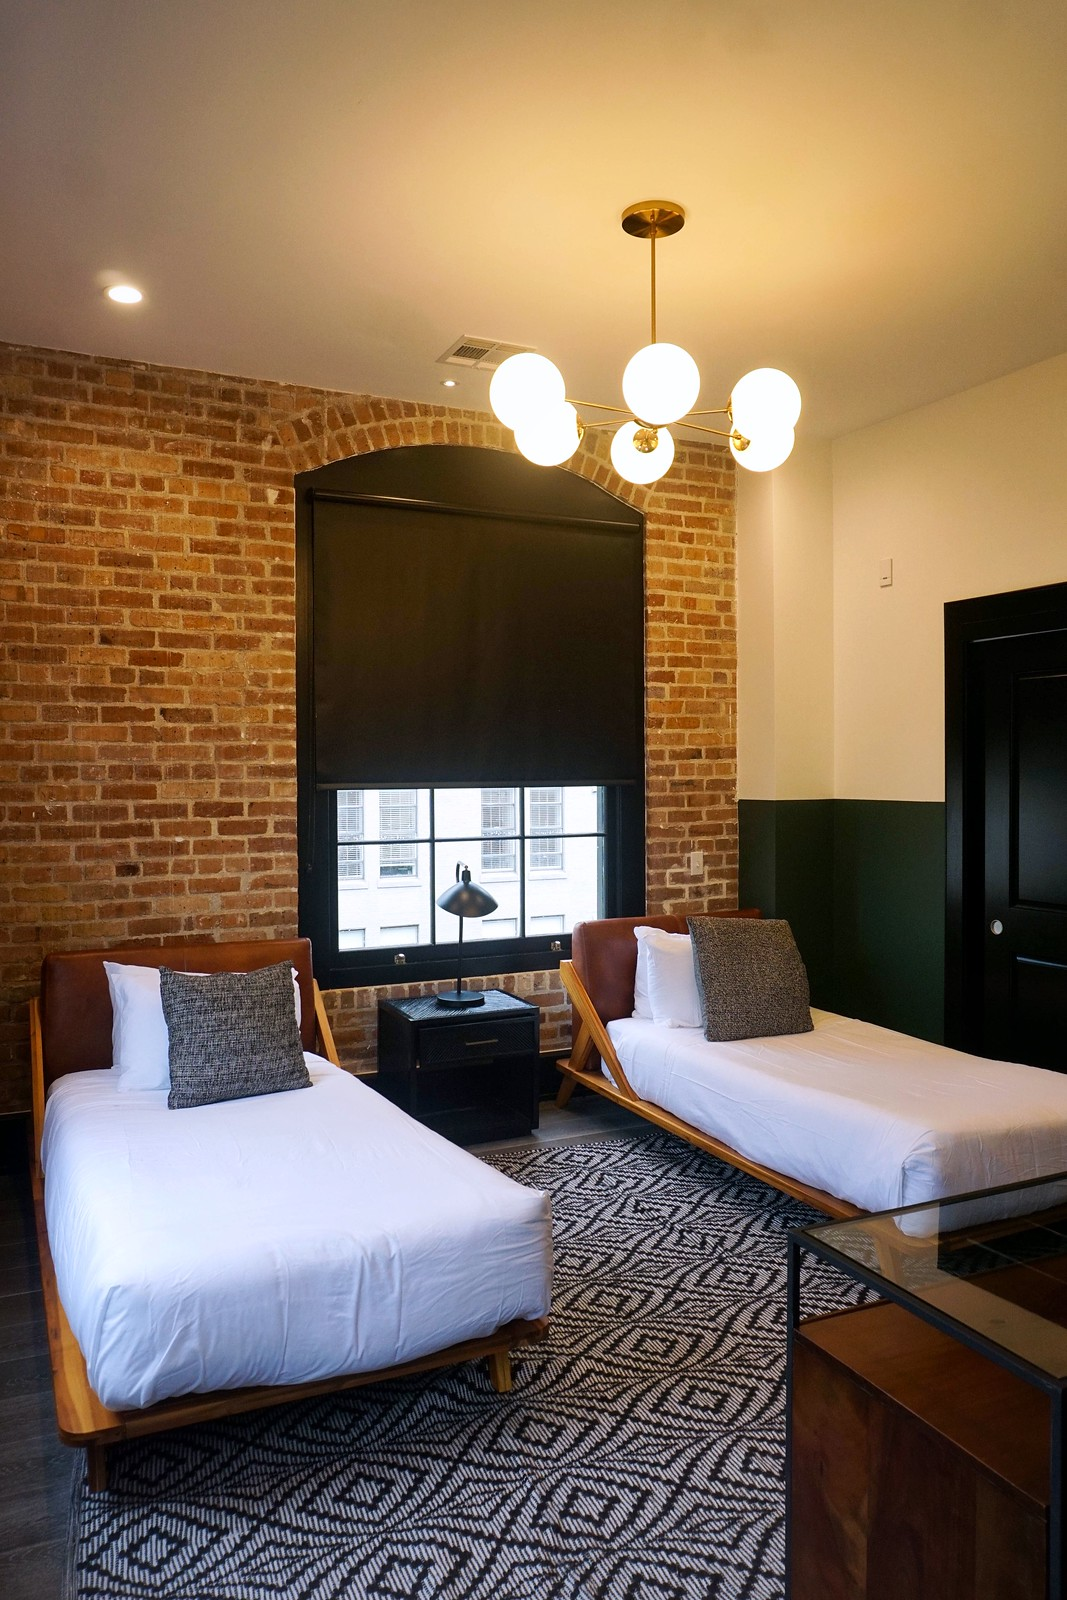 Apartment Style Hotel Room Tour | Best Hotel in New Orleans, Louisiana | Why Apartment Style Hotels are the Best for Group Trips | Domio Baronne St. Hotel | Where to Stay in New Orleans | NOLA's First Apartment Hotel